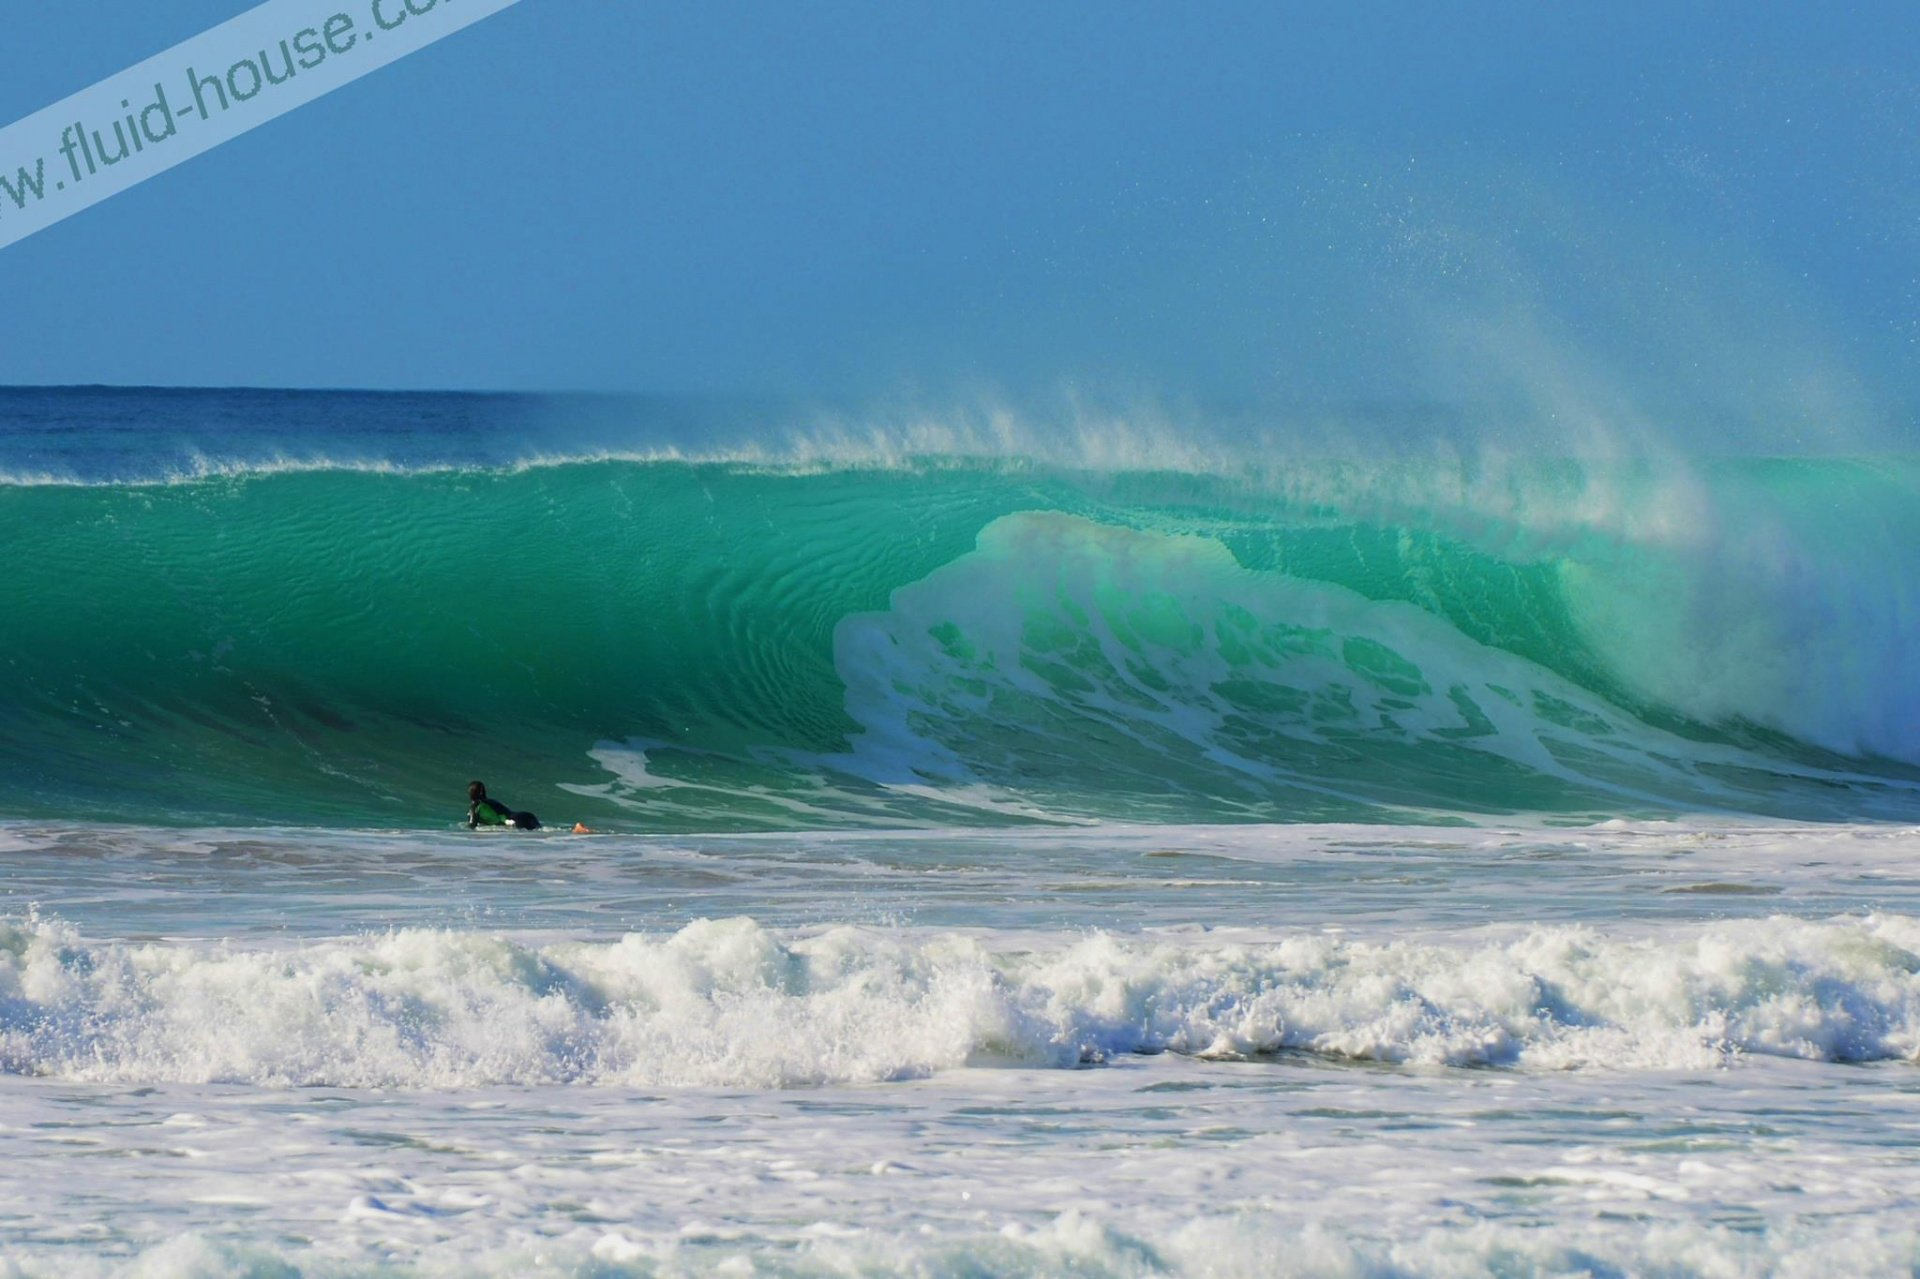 Fluid House's photo of El Palmar